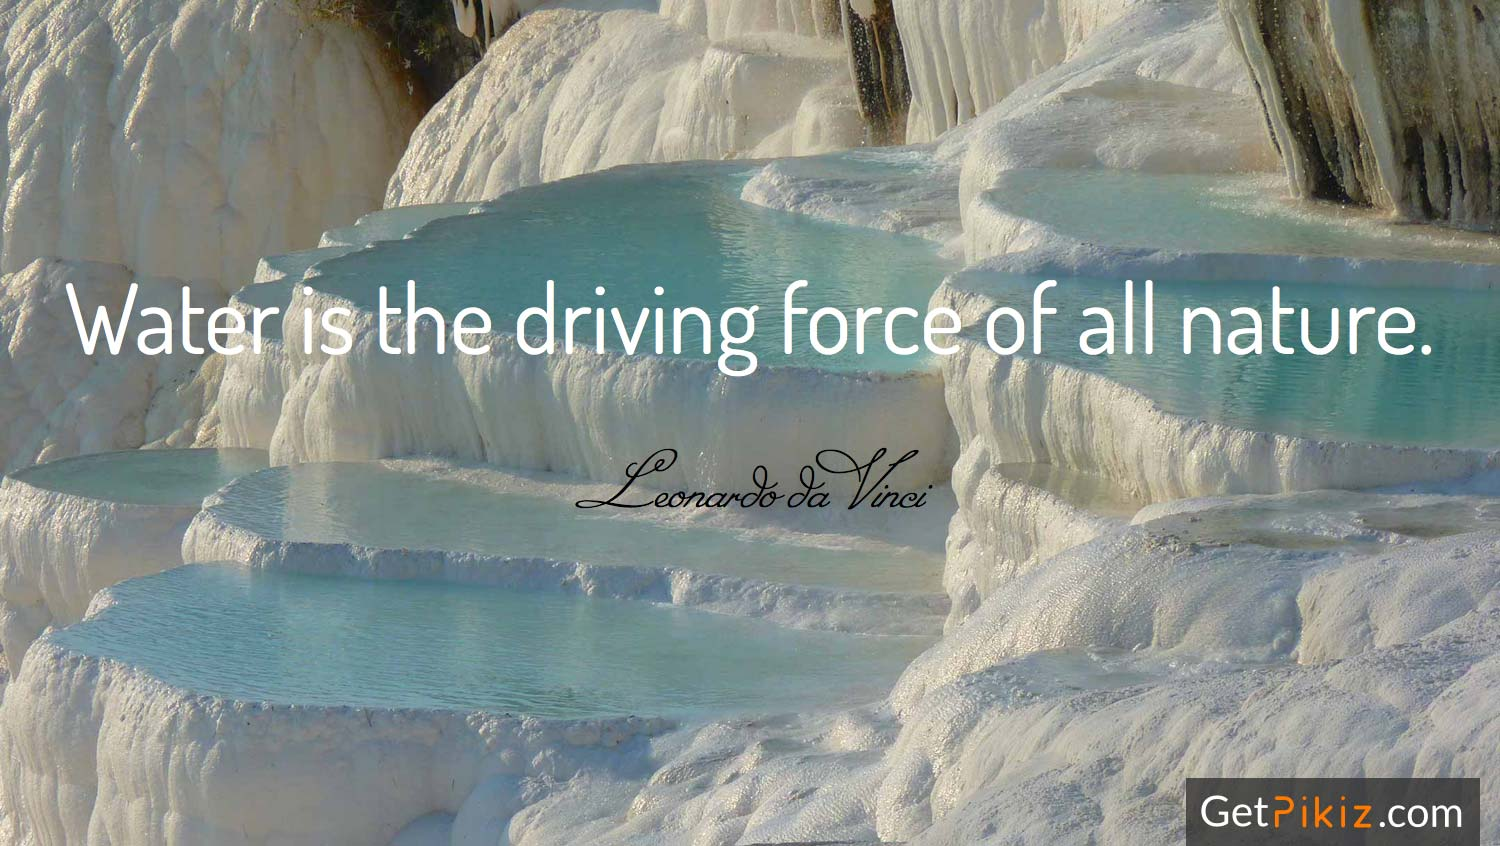 Water is the driving force of all nature. – Leonardo da Vinci